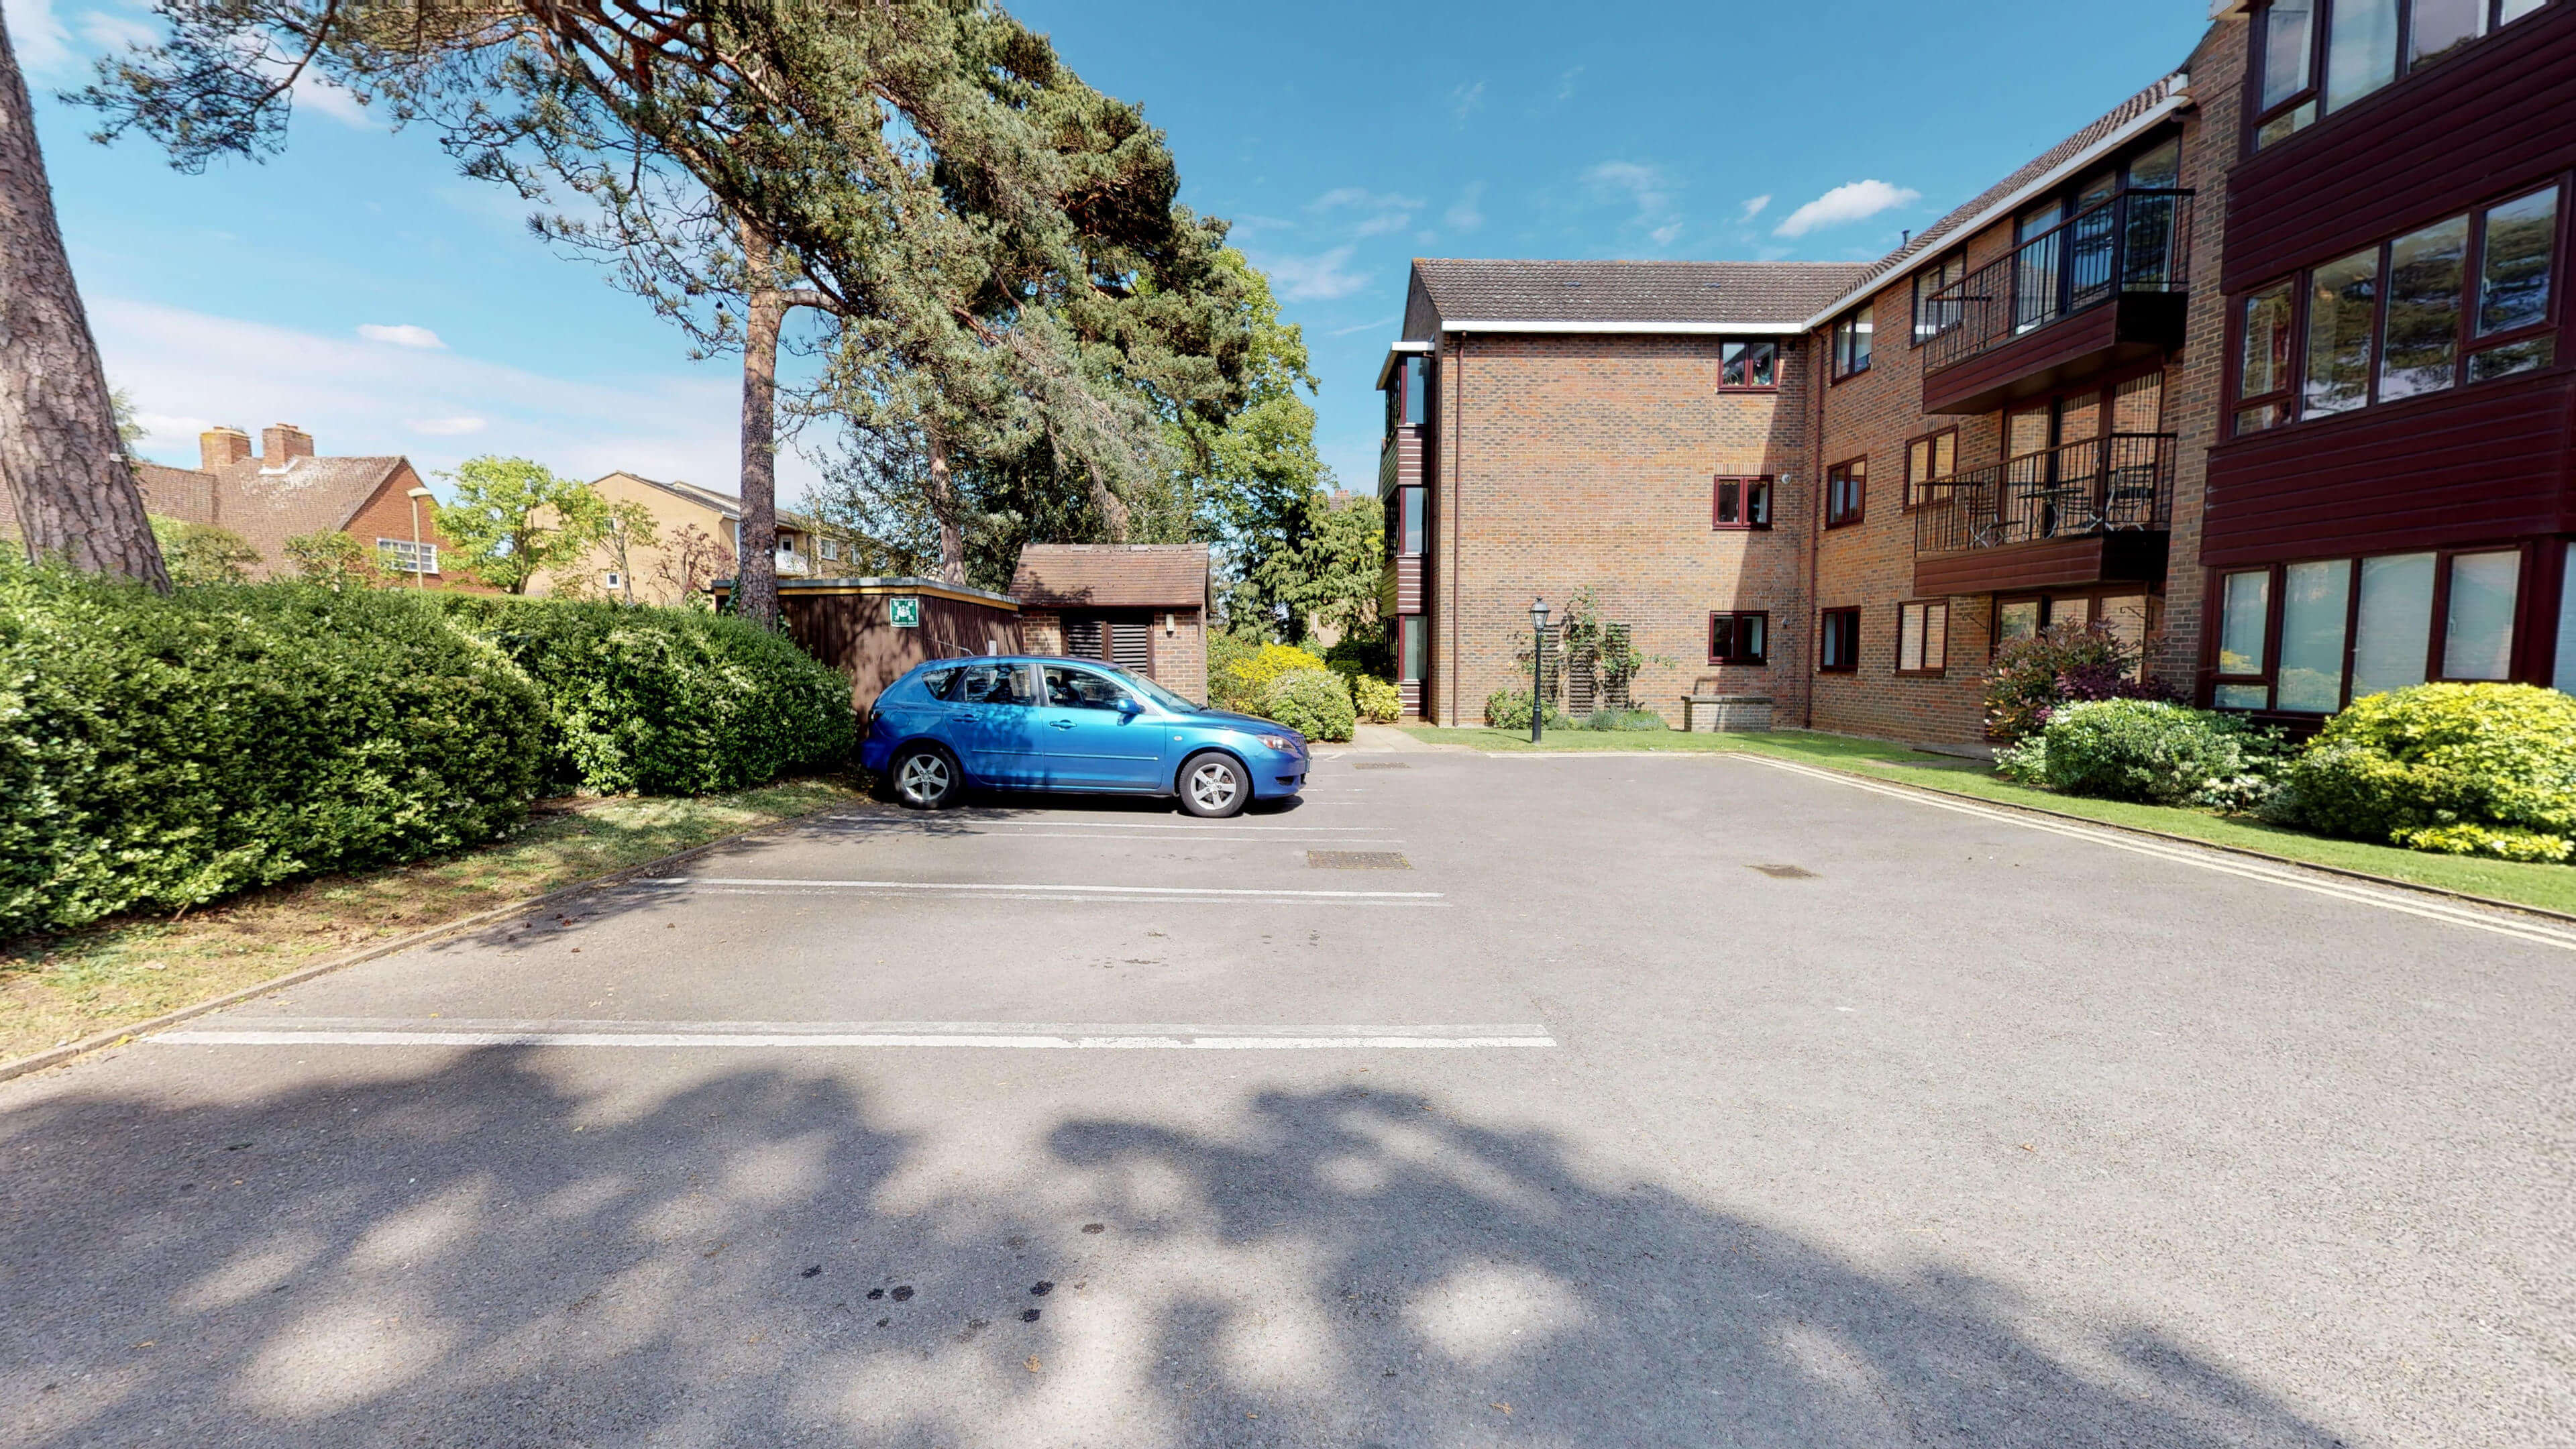 Short Stay Oxford The Firs Apartment 05232019 065101